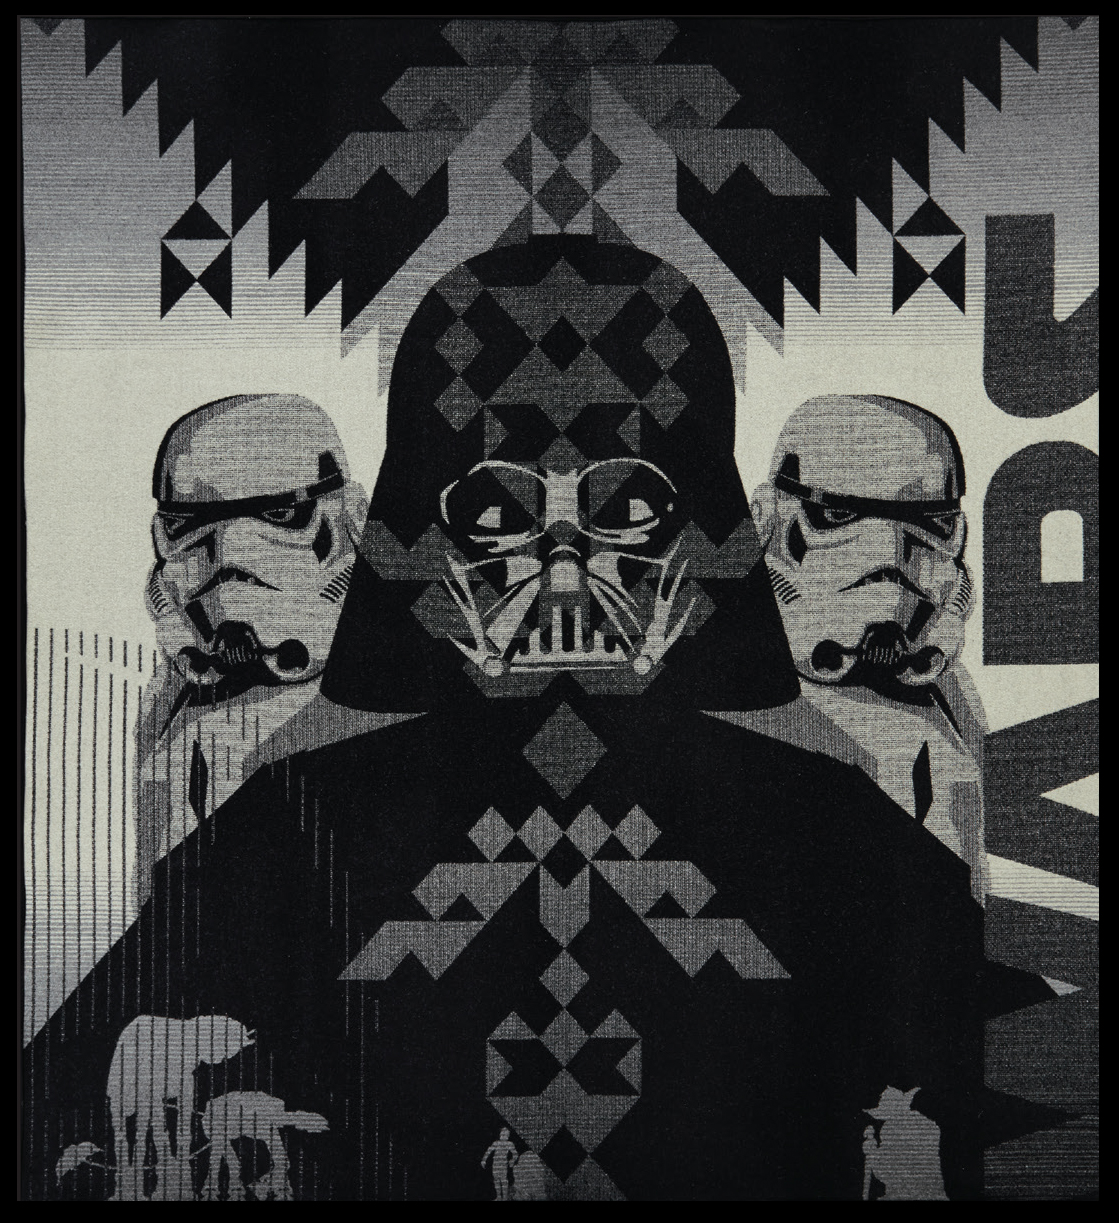 Star Wars And Pendleton Blankets Unveiled For Force Friday